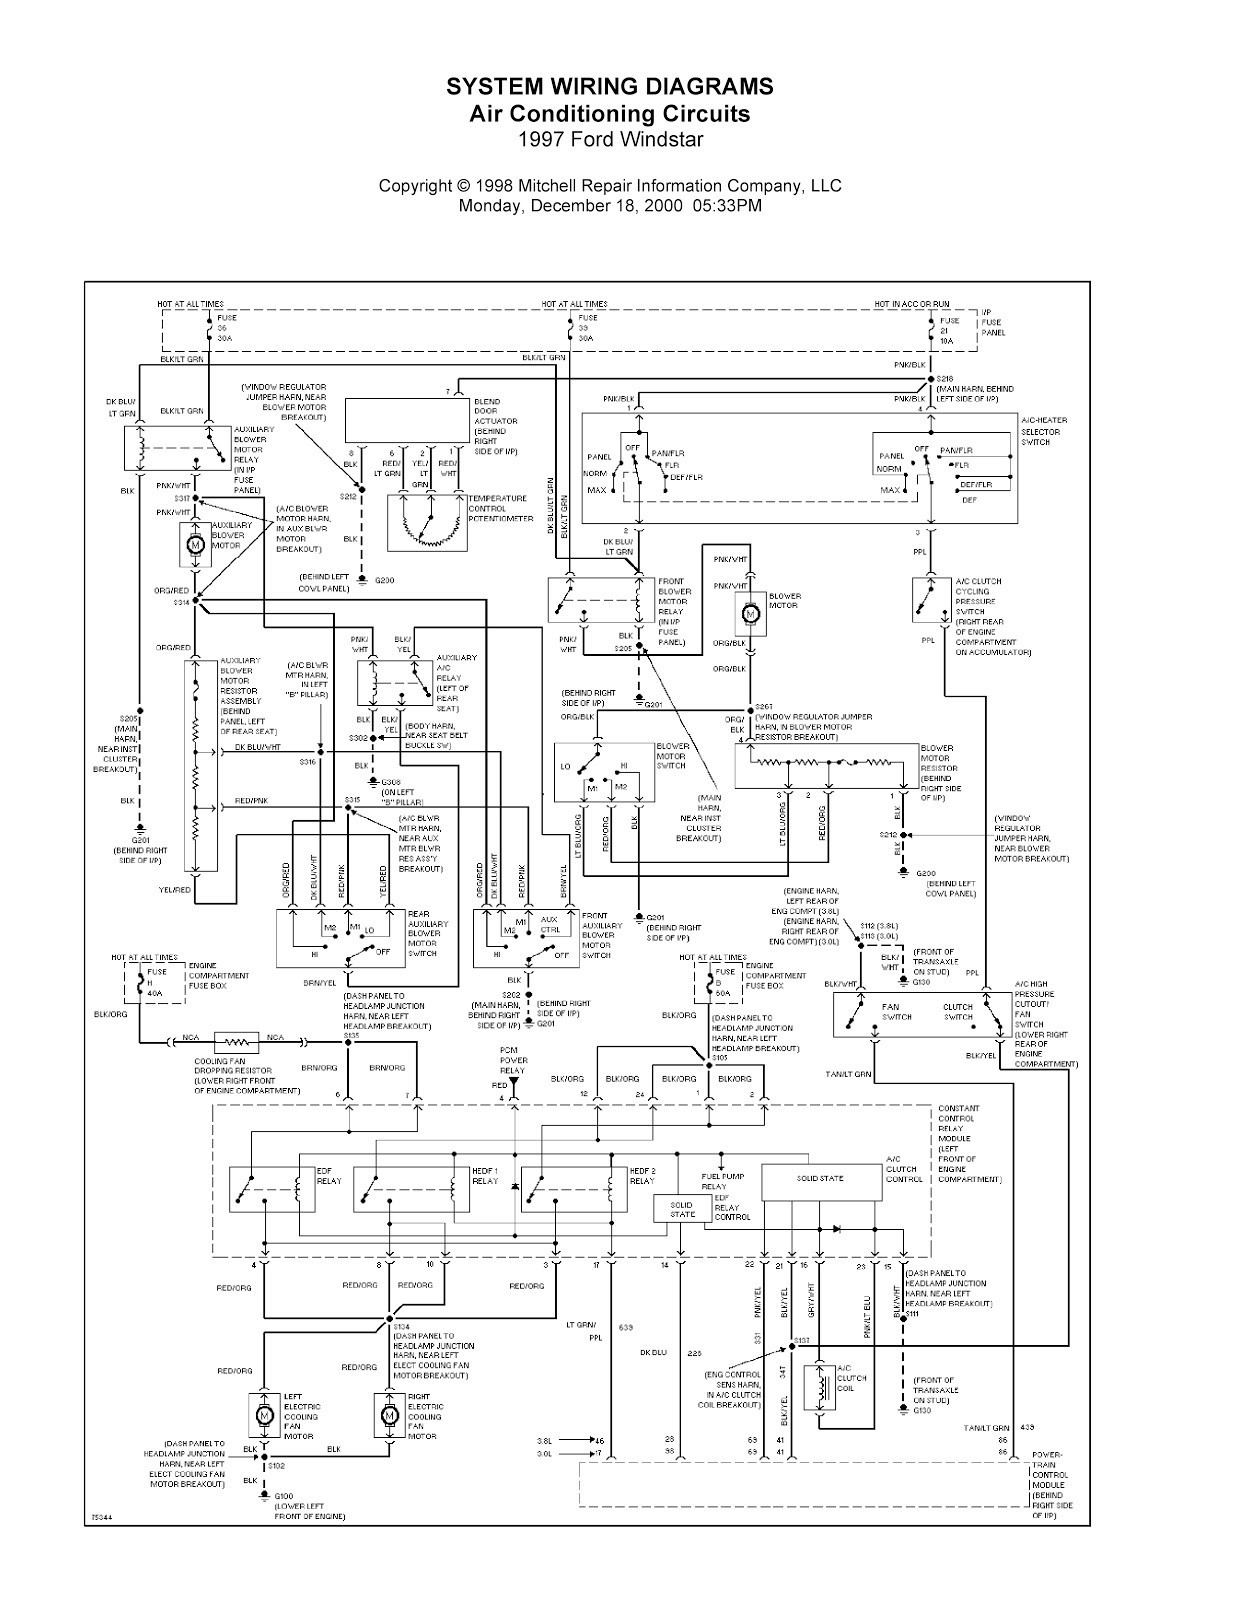 Windstar Wiring Diagram Data Need For 1994 Ford E250 Van Starter Solenoid Fixya 1999 Harness Allante 2000 Alternator